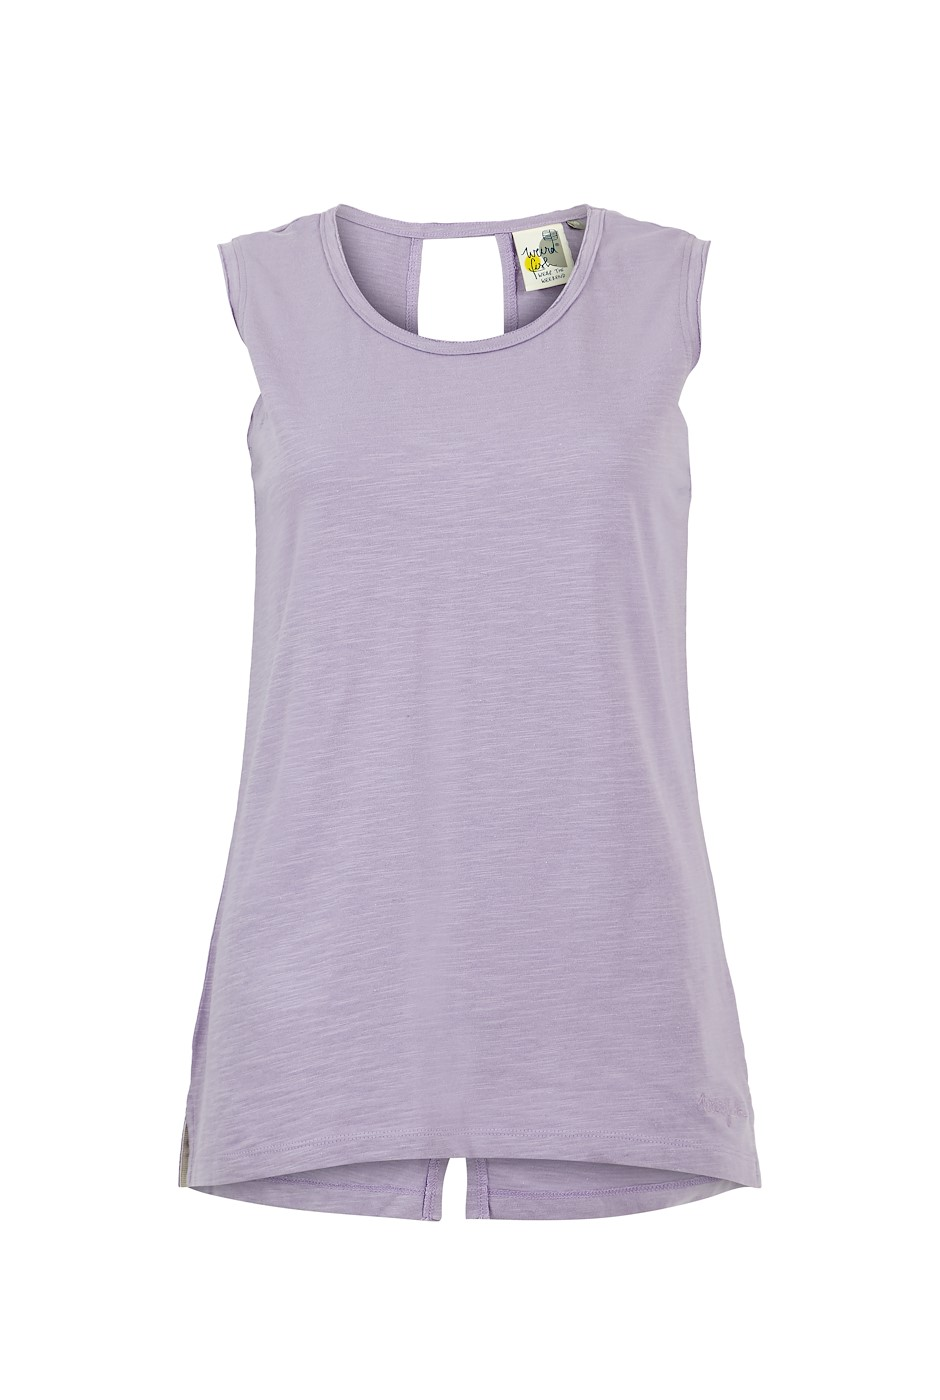 Maze Outfitter Vest Lilac Hint